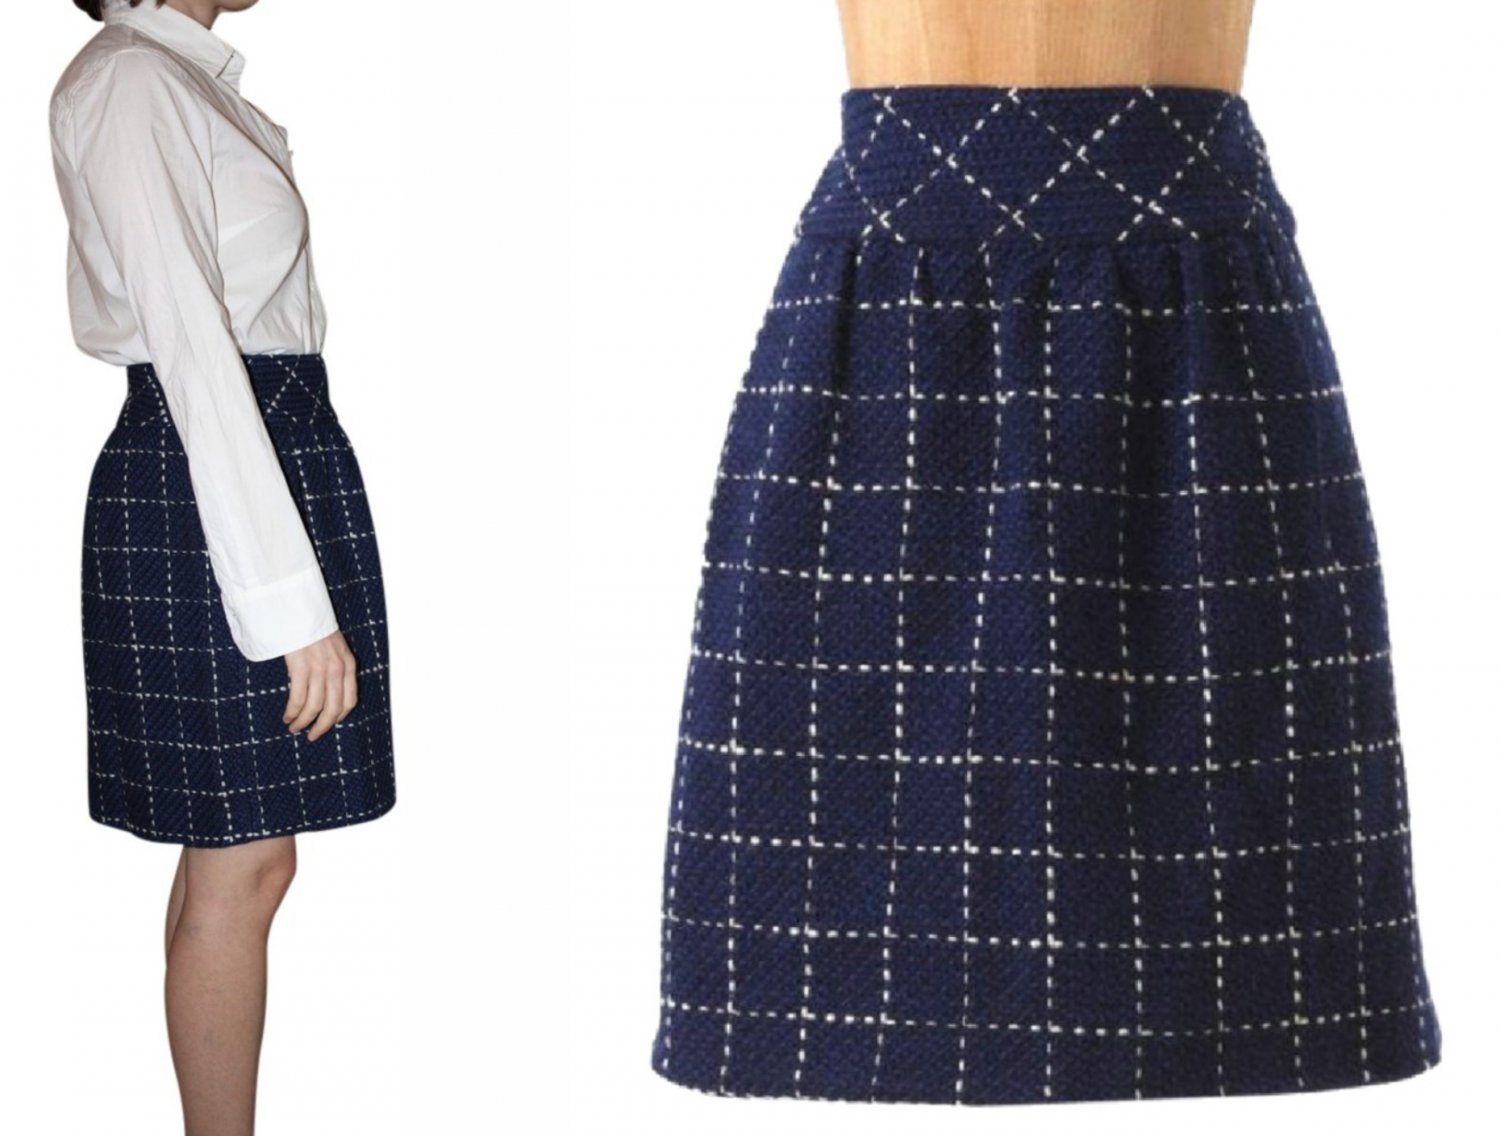 Anthropologie Converging Bits Wool Skirt 10 Large Navy Blue by Maeve